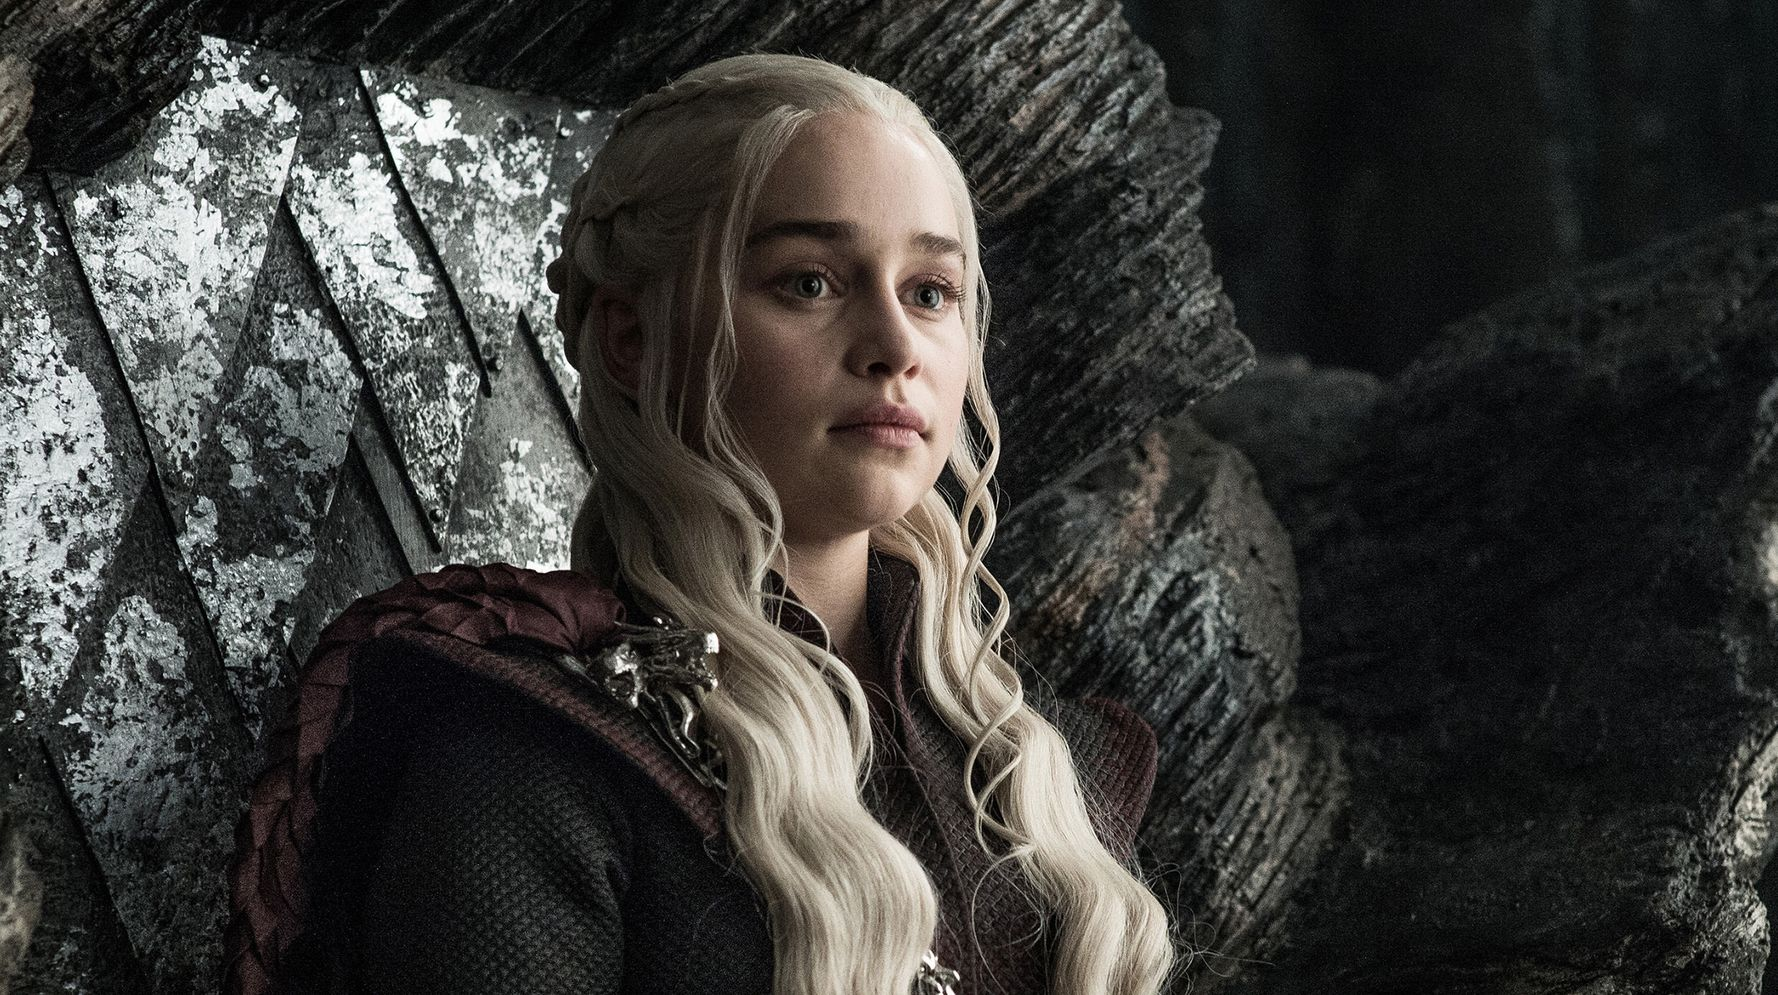 Emilia Clarke S New Hair Is Giving Us Game Of Thrones